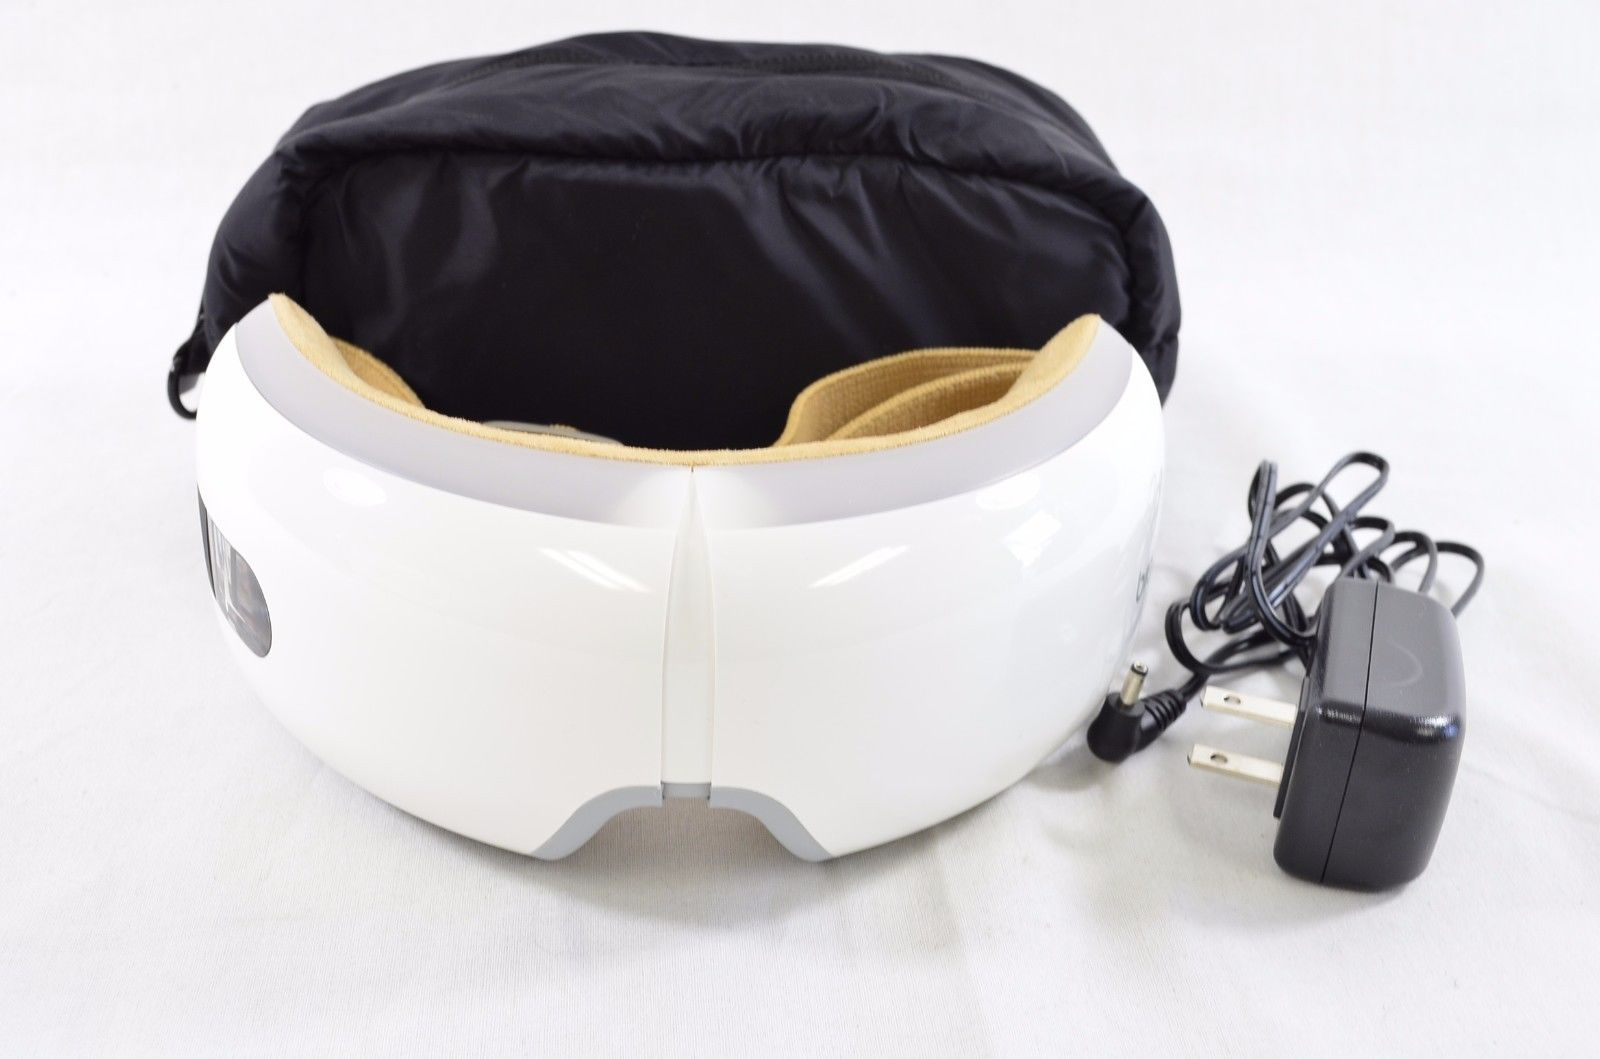 Breo iSee4 Eye Massager Review - ON OF THE BEST EYE MASSAGER